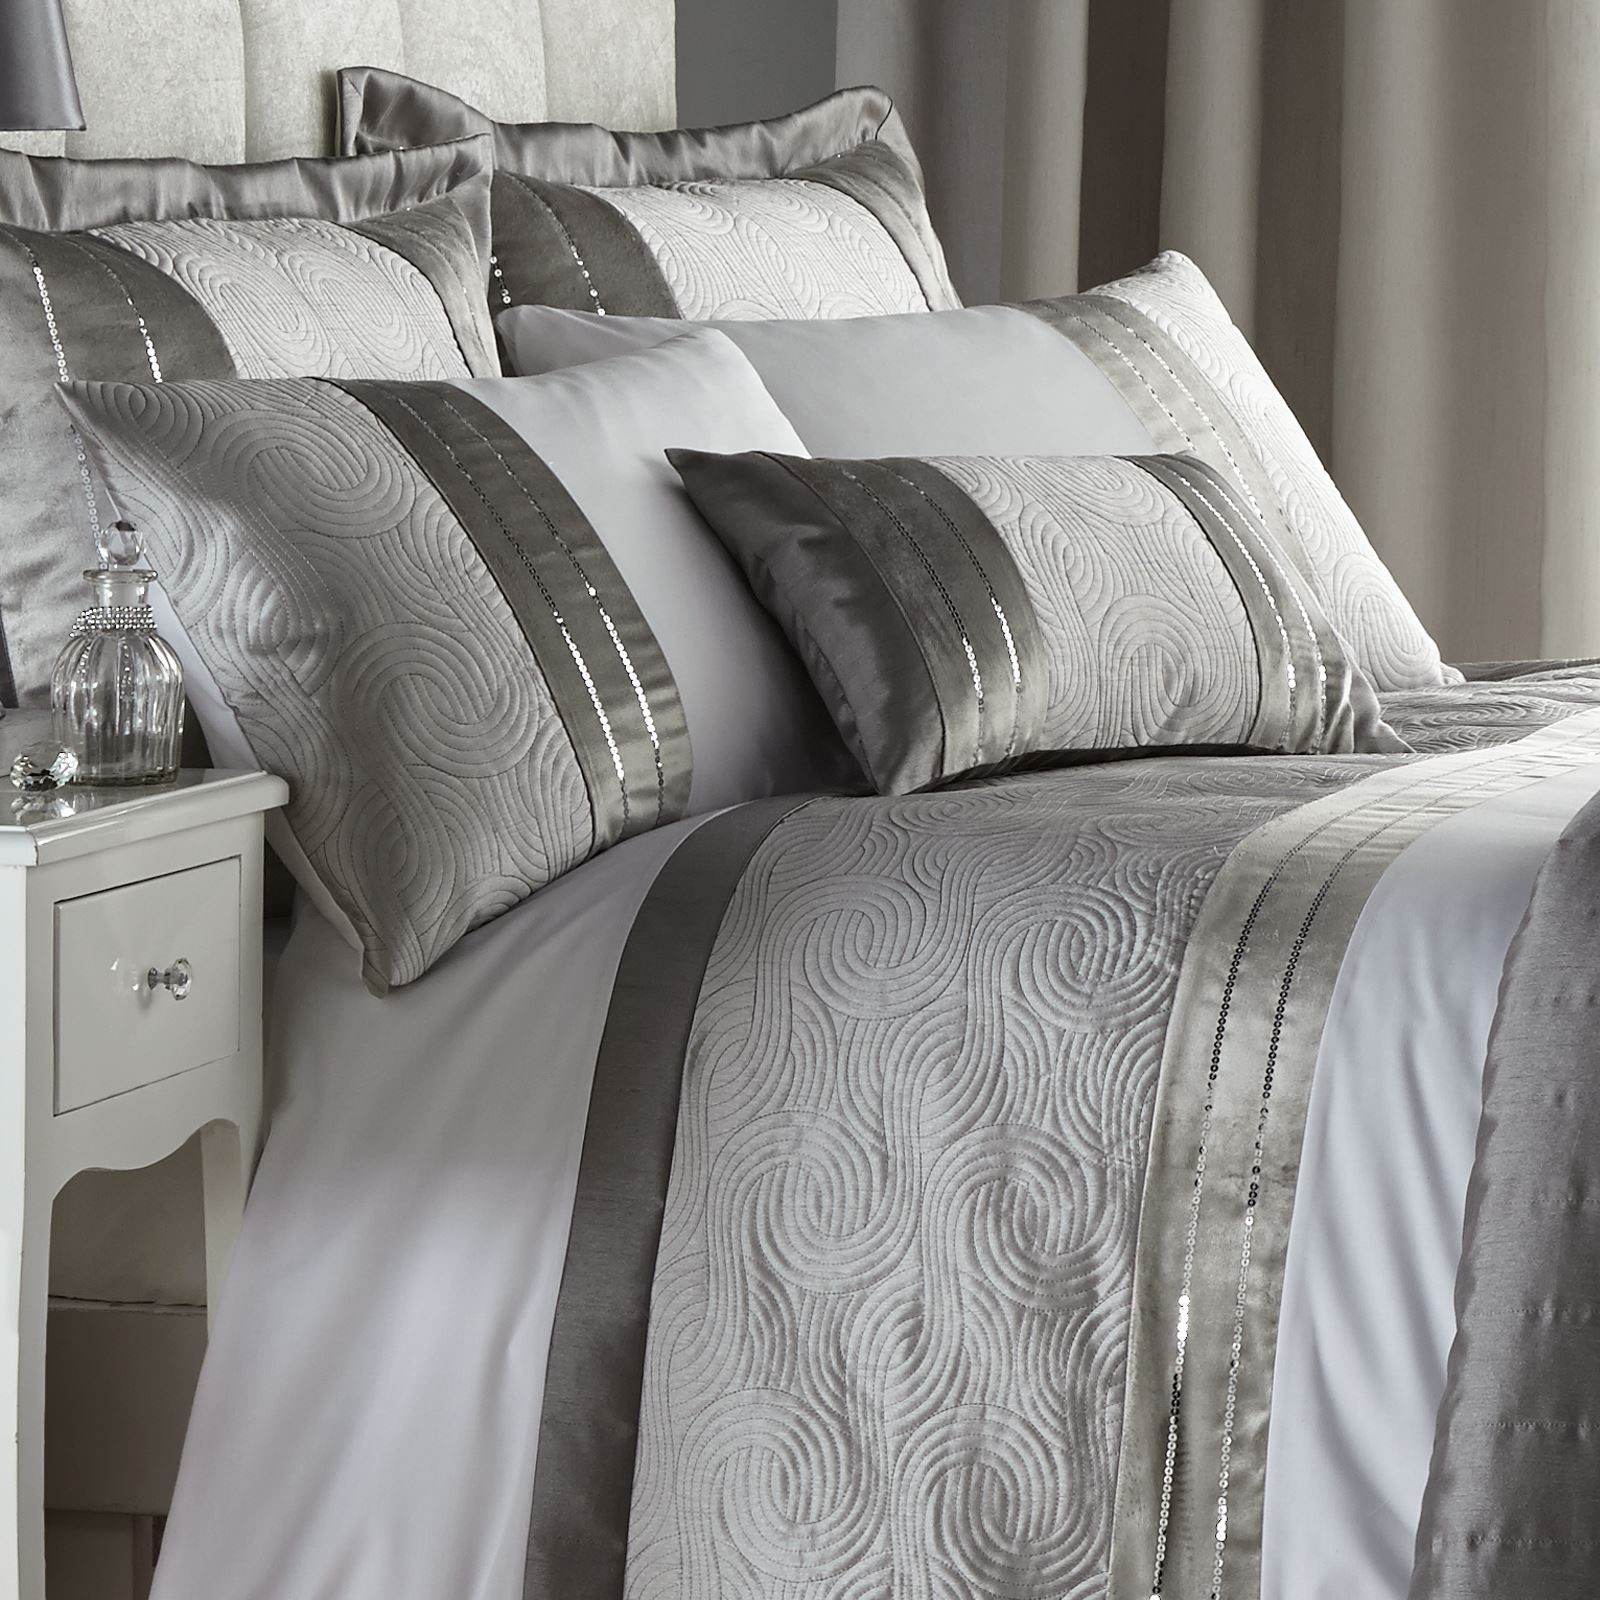 Sleigh Bedroom Sets King Bedroom Jpg Simple Bedroom Colour Design Bedroom Accessories Uk: Catherine Lansfield Gatsby Silver Sequin White Duvet Quilt